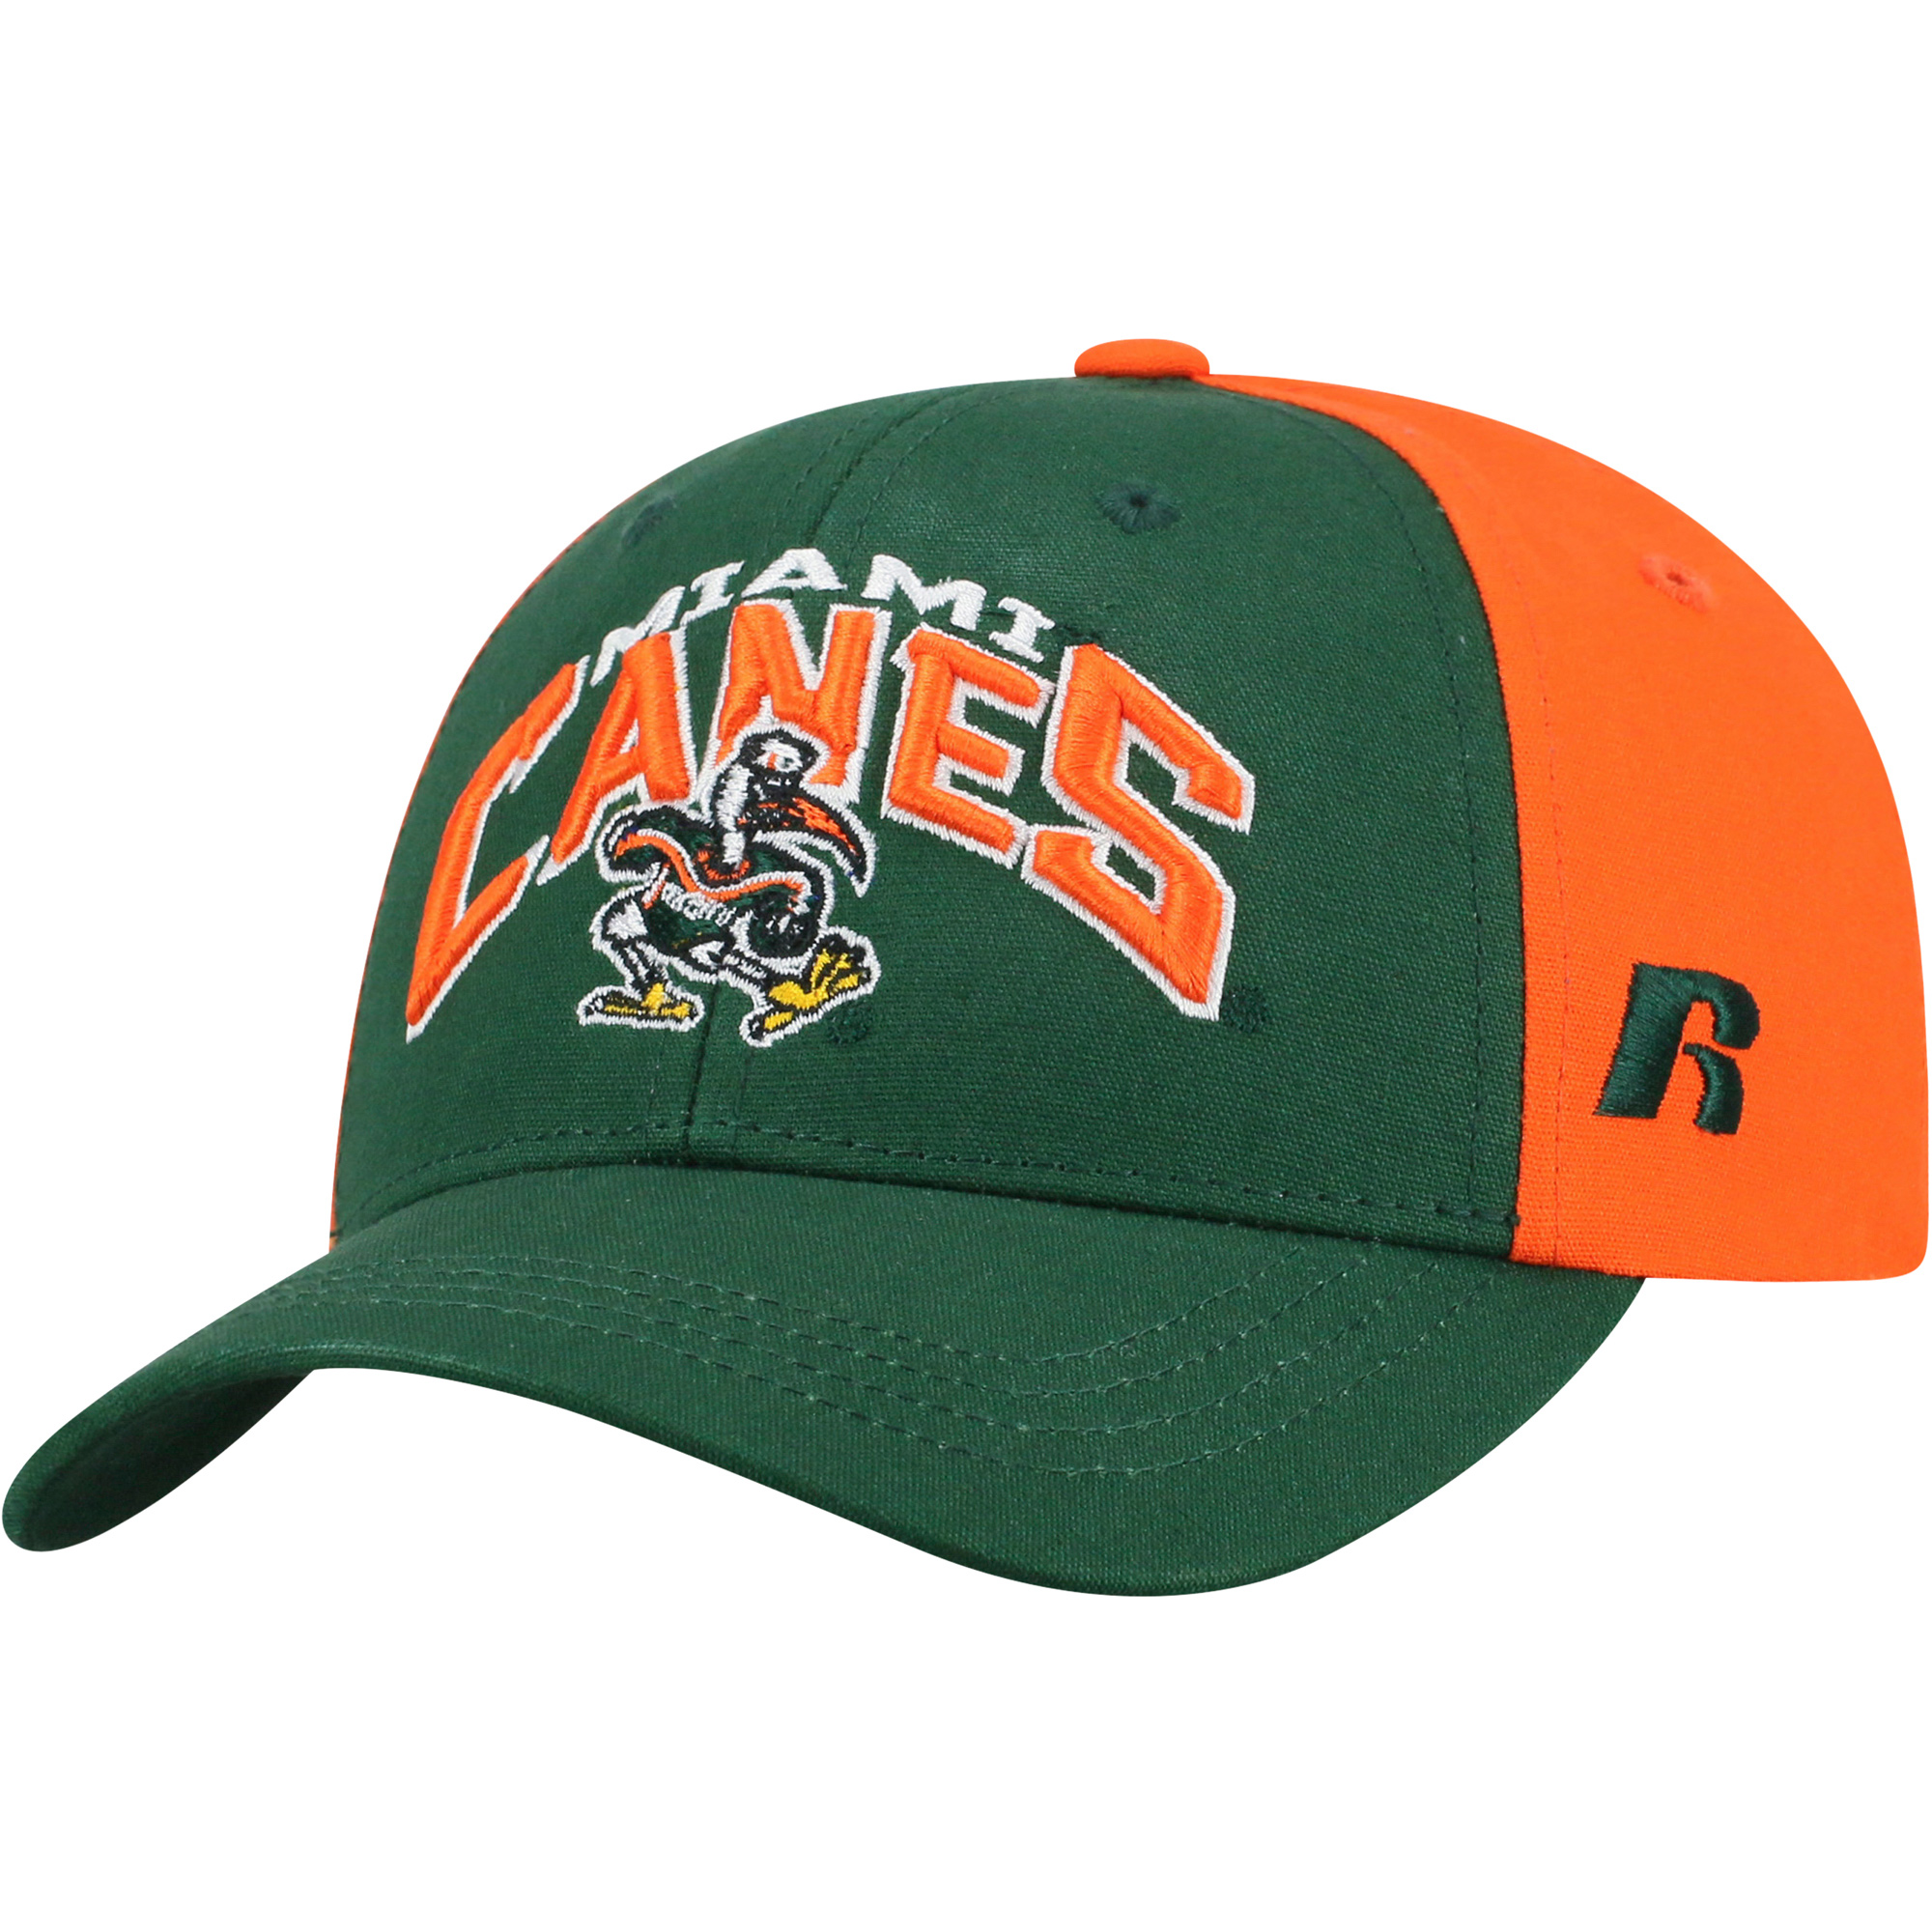 Youth Russell Green/Orange Miami Hurricanes Tastic Adjustable Hat - OSFA